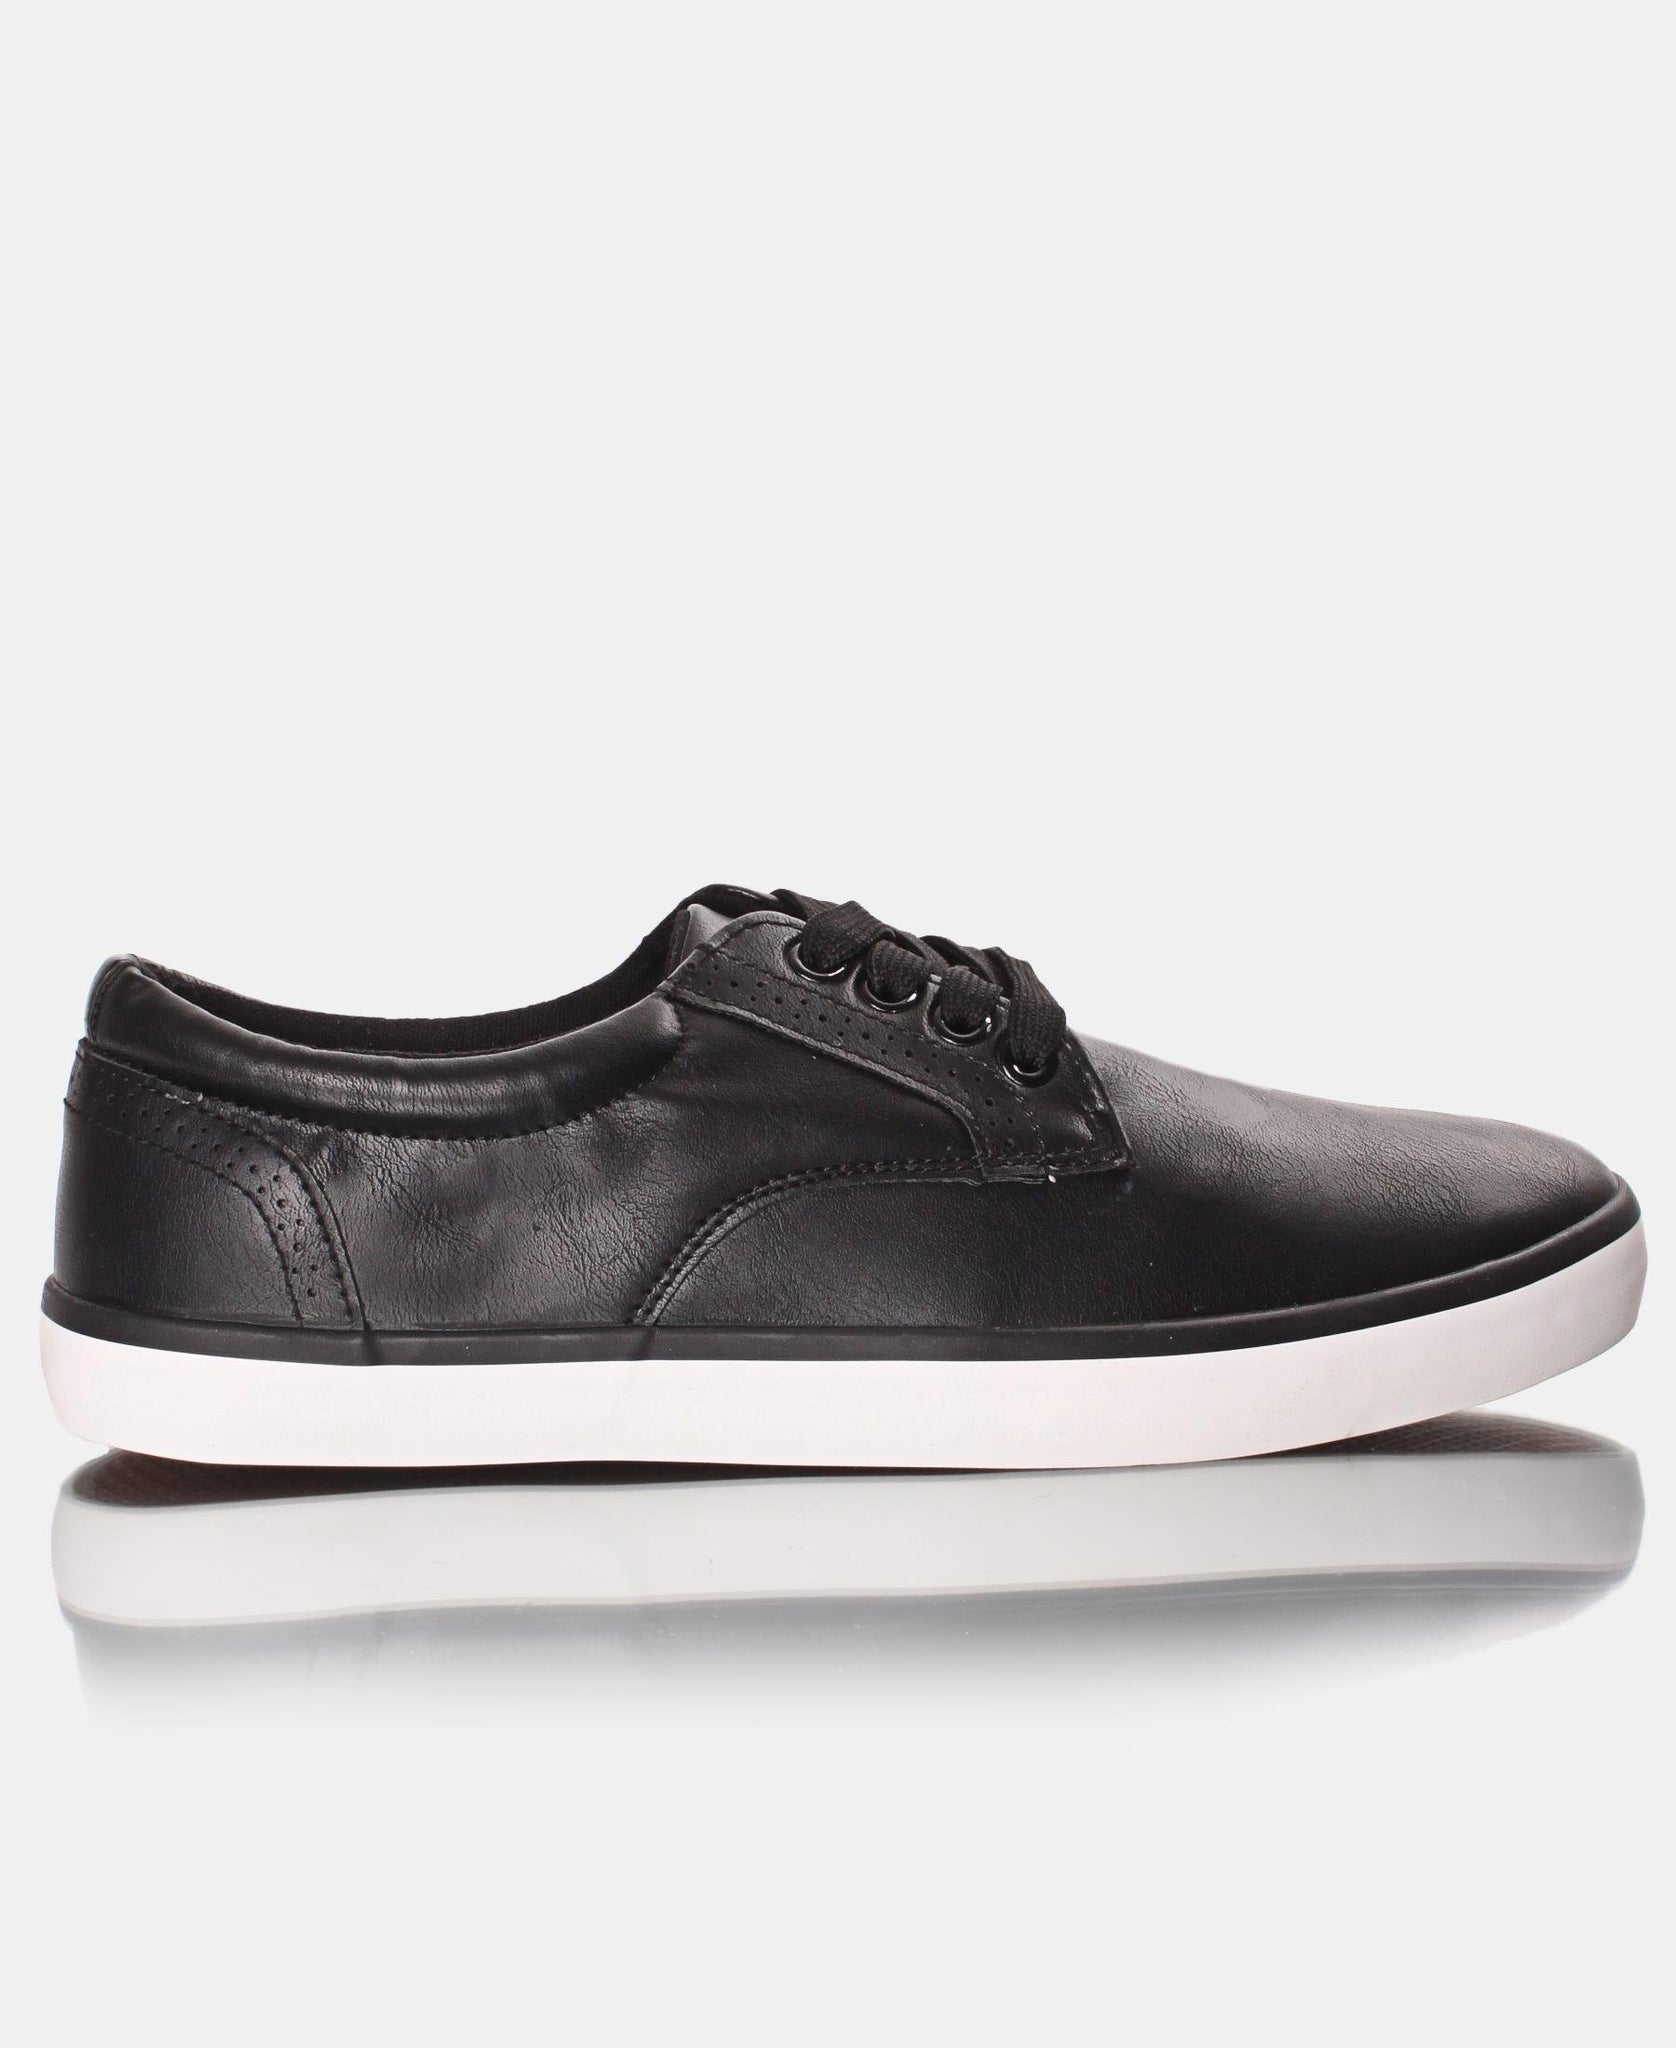 Men's Vandal Sneakers - Black